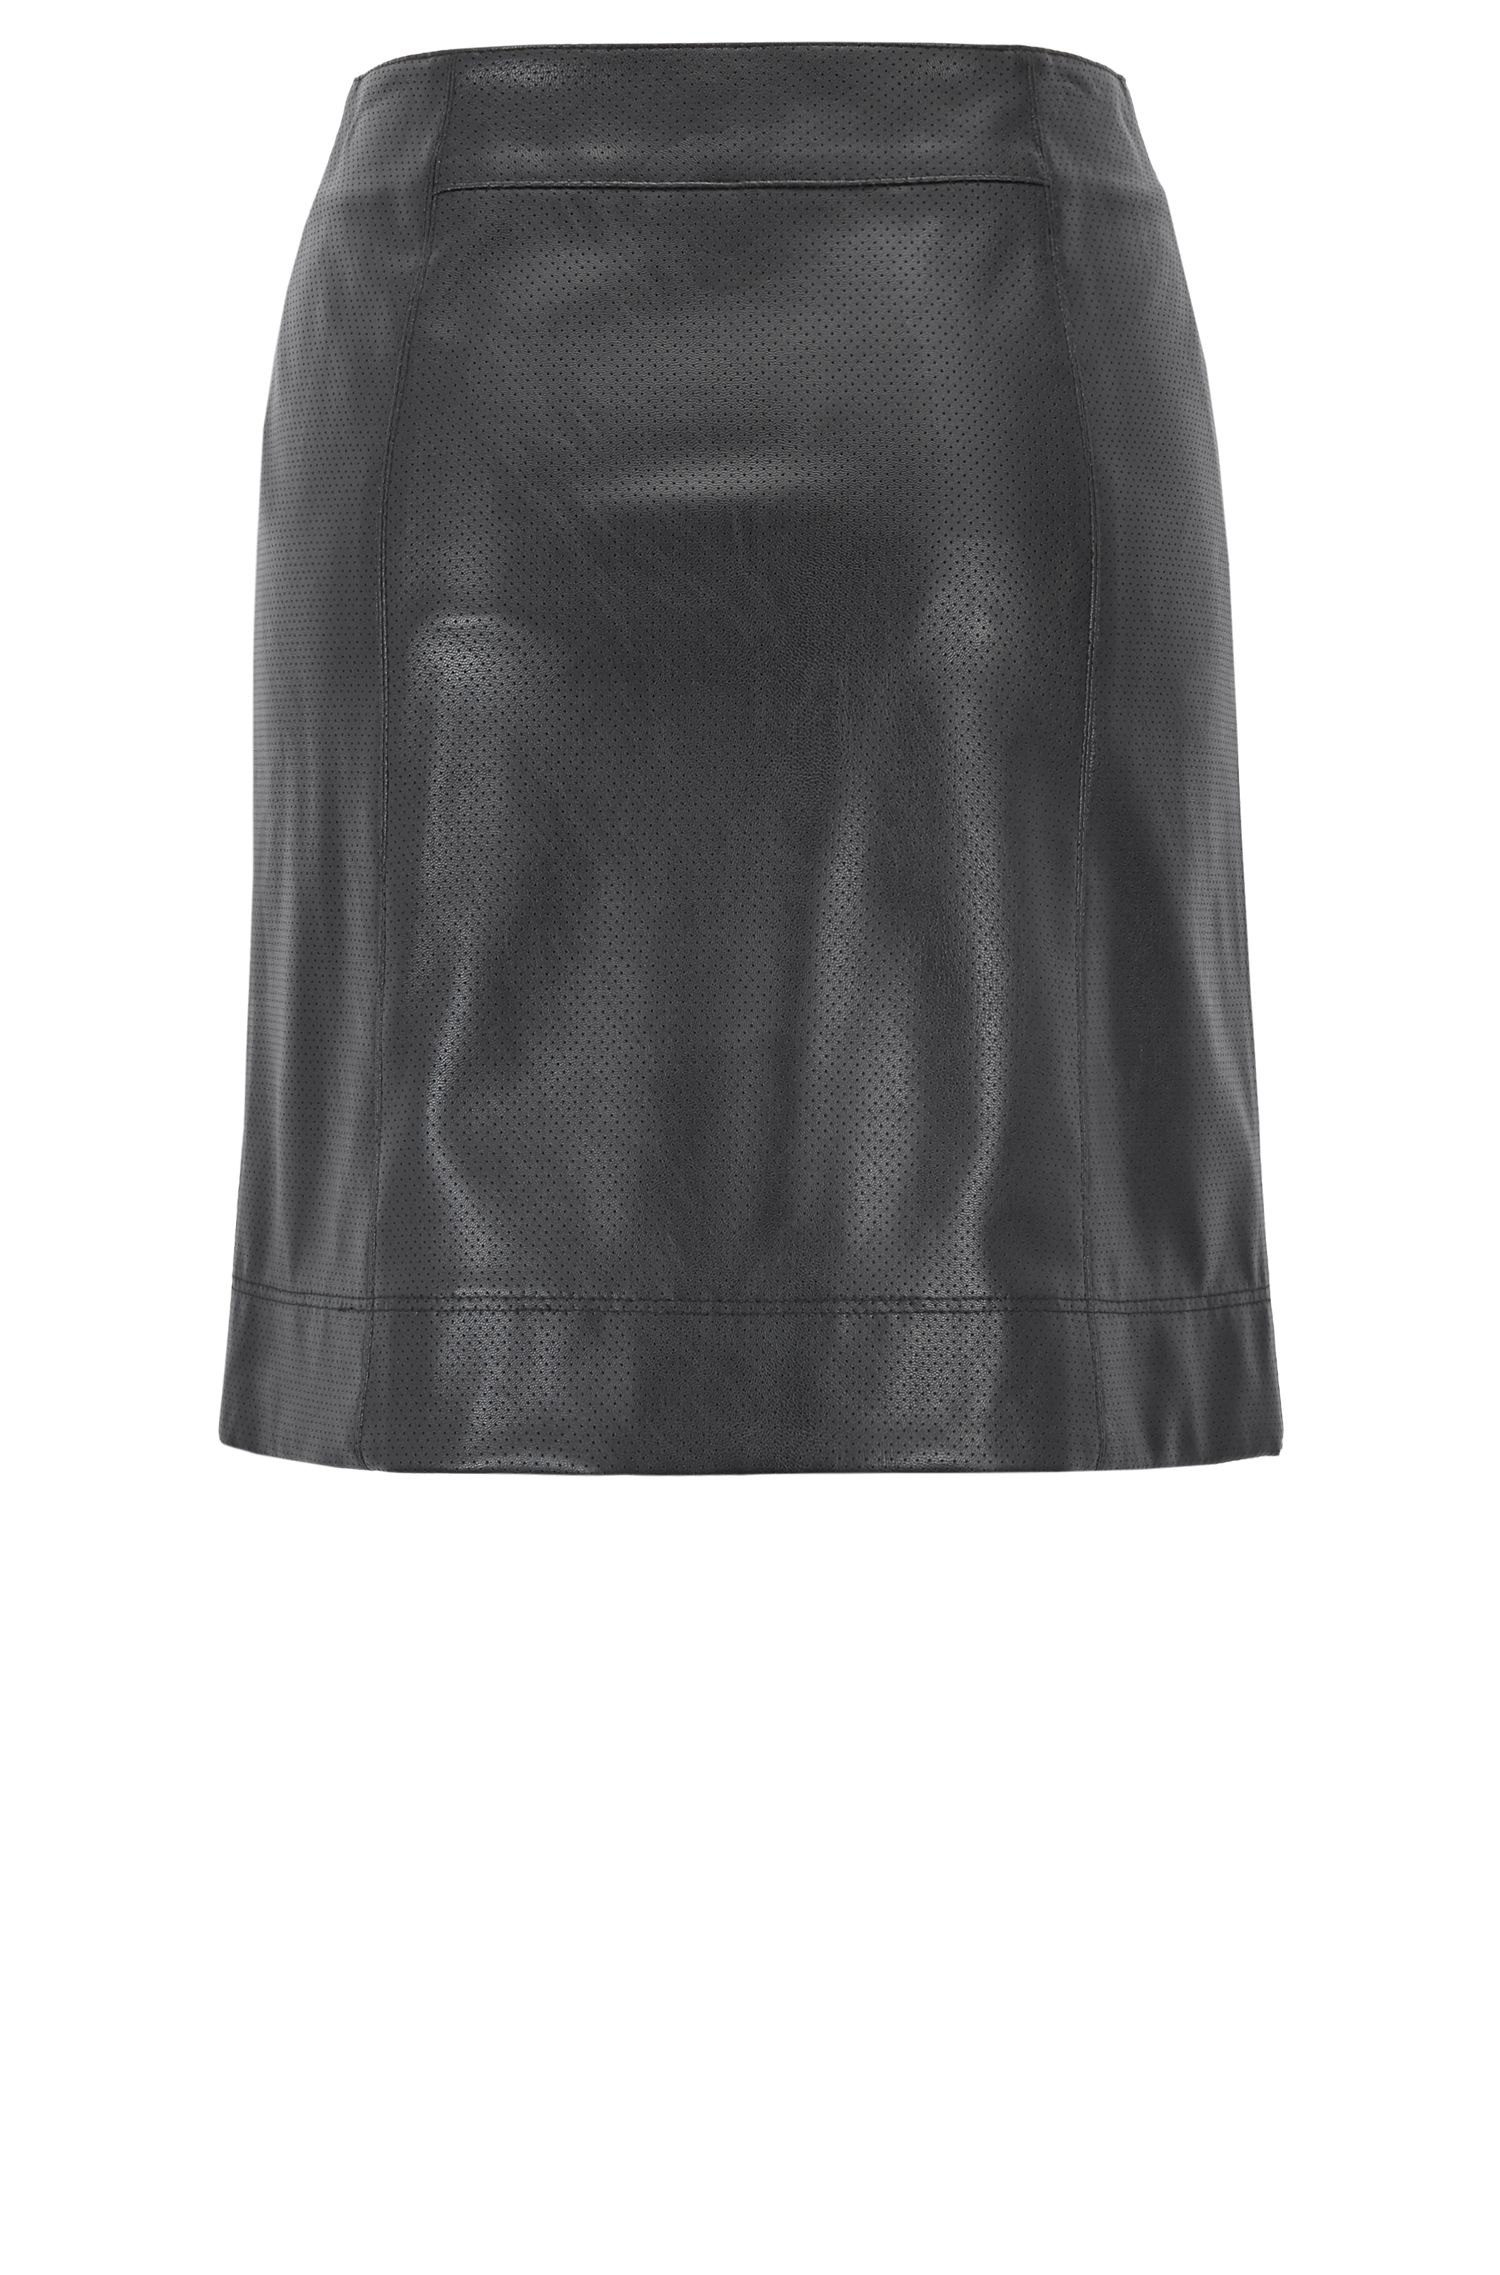 A-line mini skirt in perforated faux leather